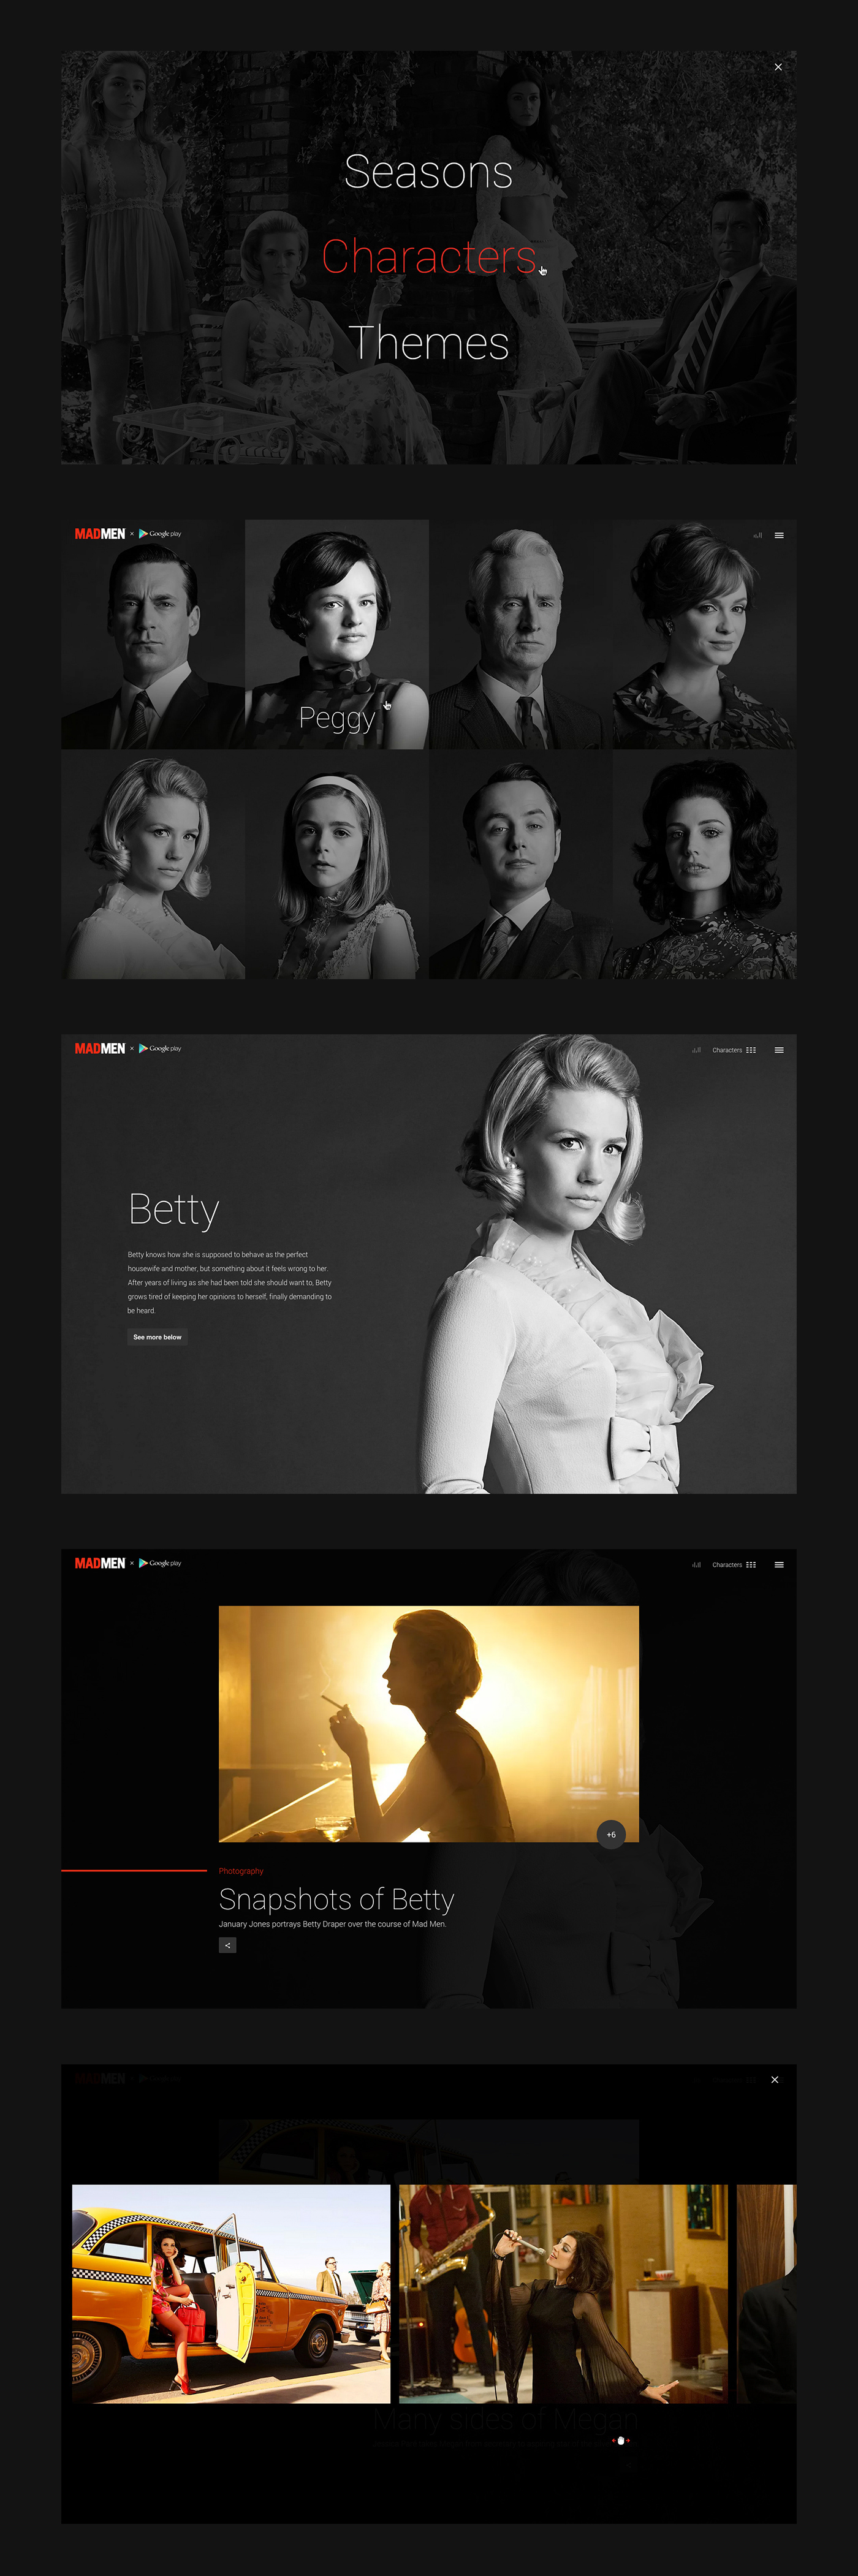 The Mad Men Experience on Behance